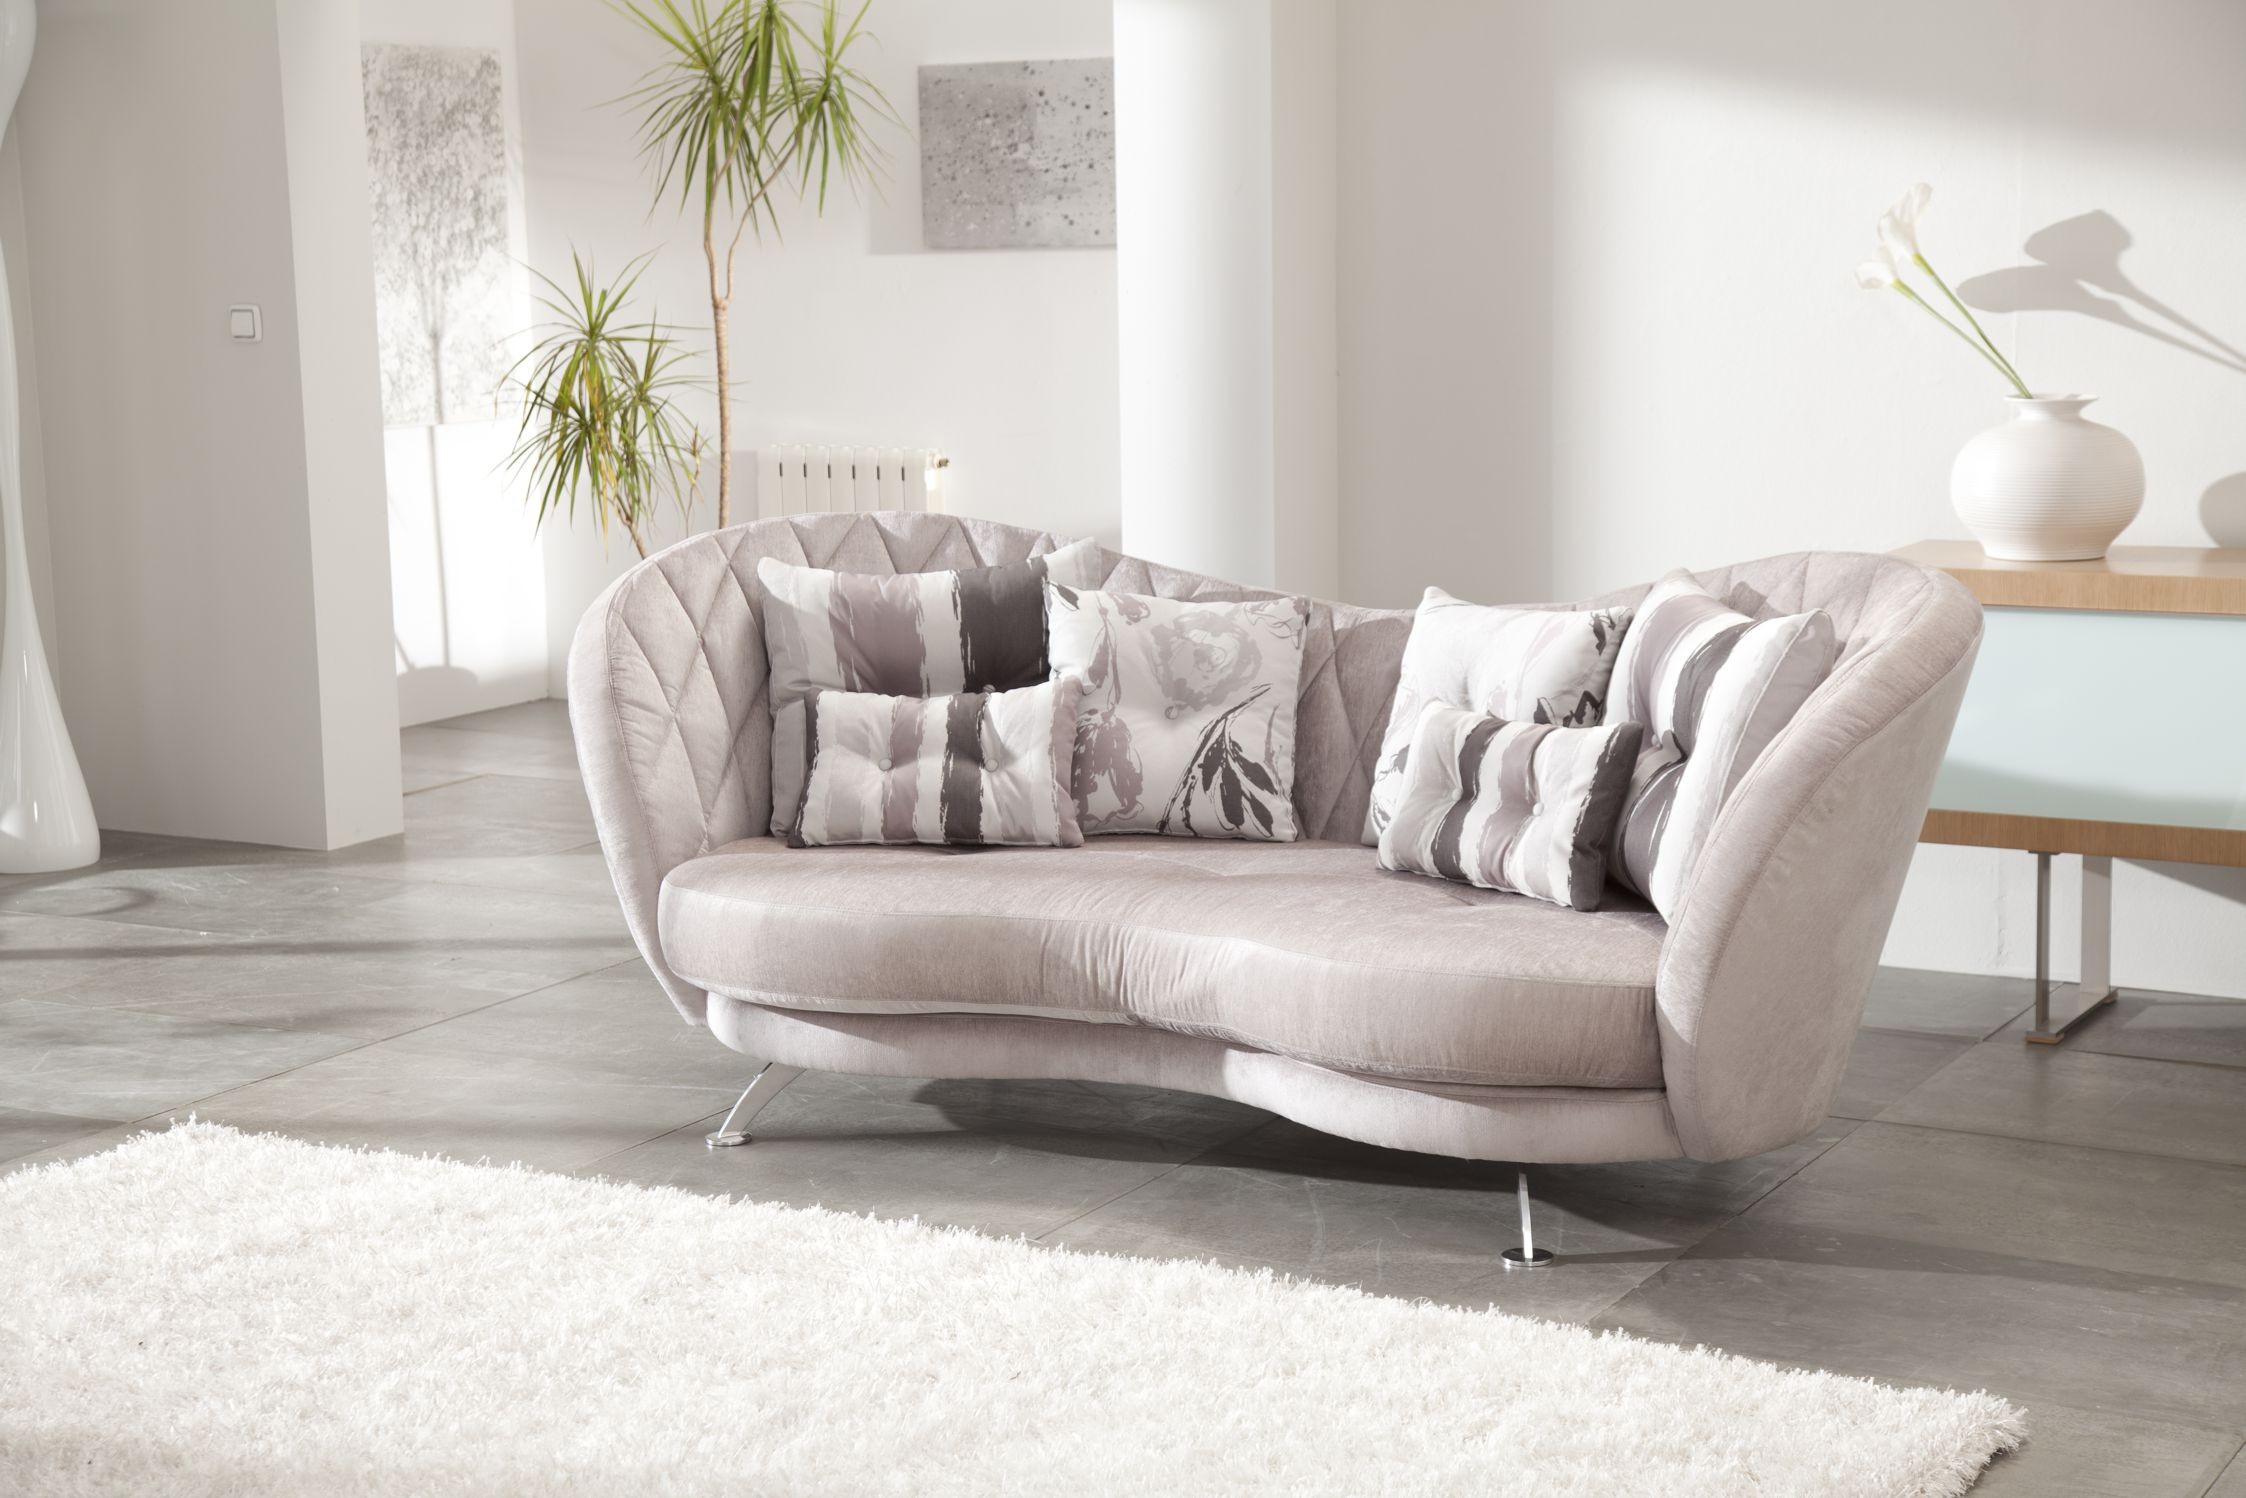 Josephine Contemporary Sofa | Fama Sofas Regarding Josephine Sofa Chairs (View 11 of 20)